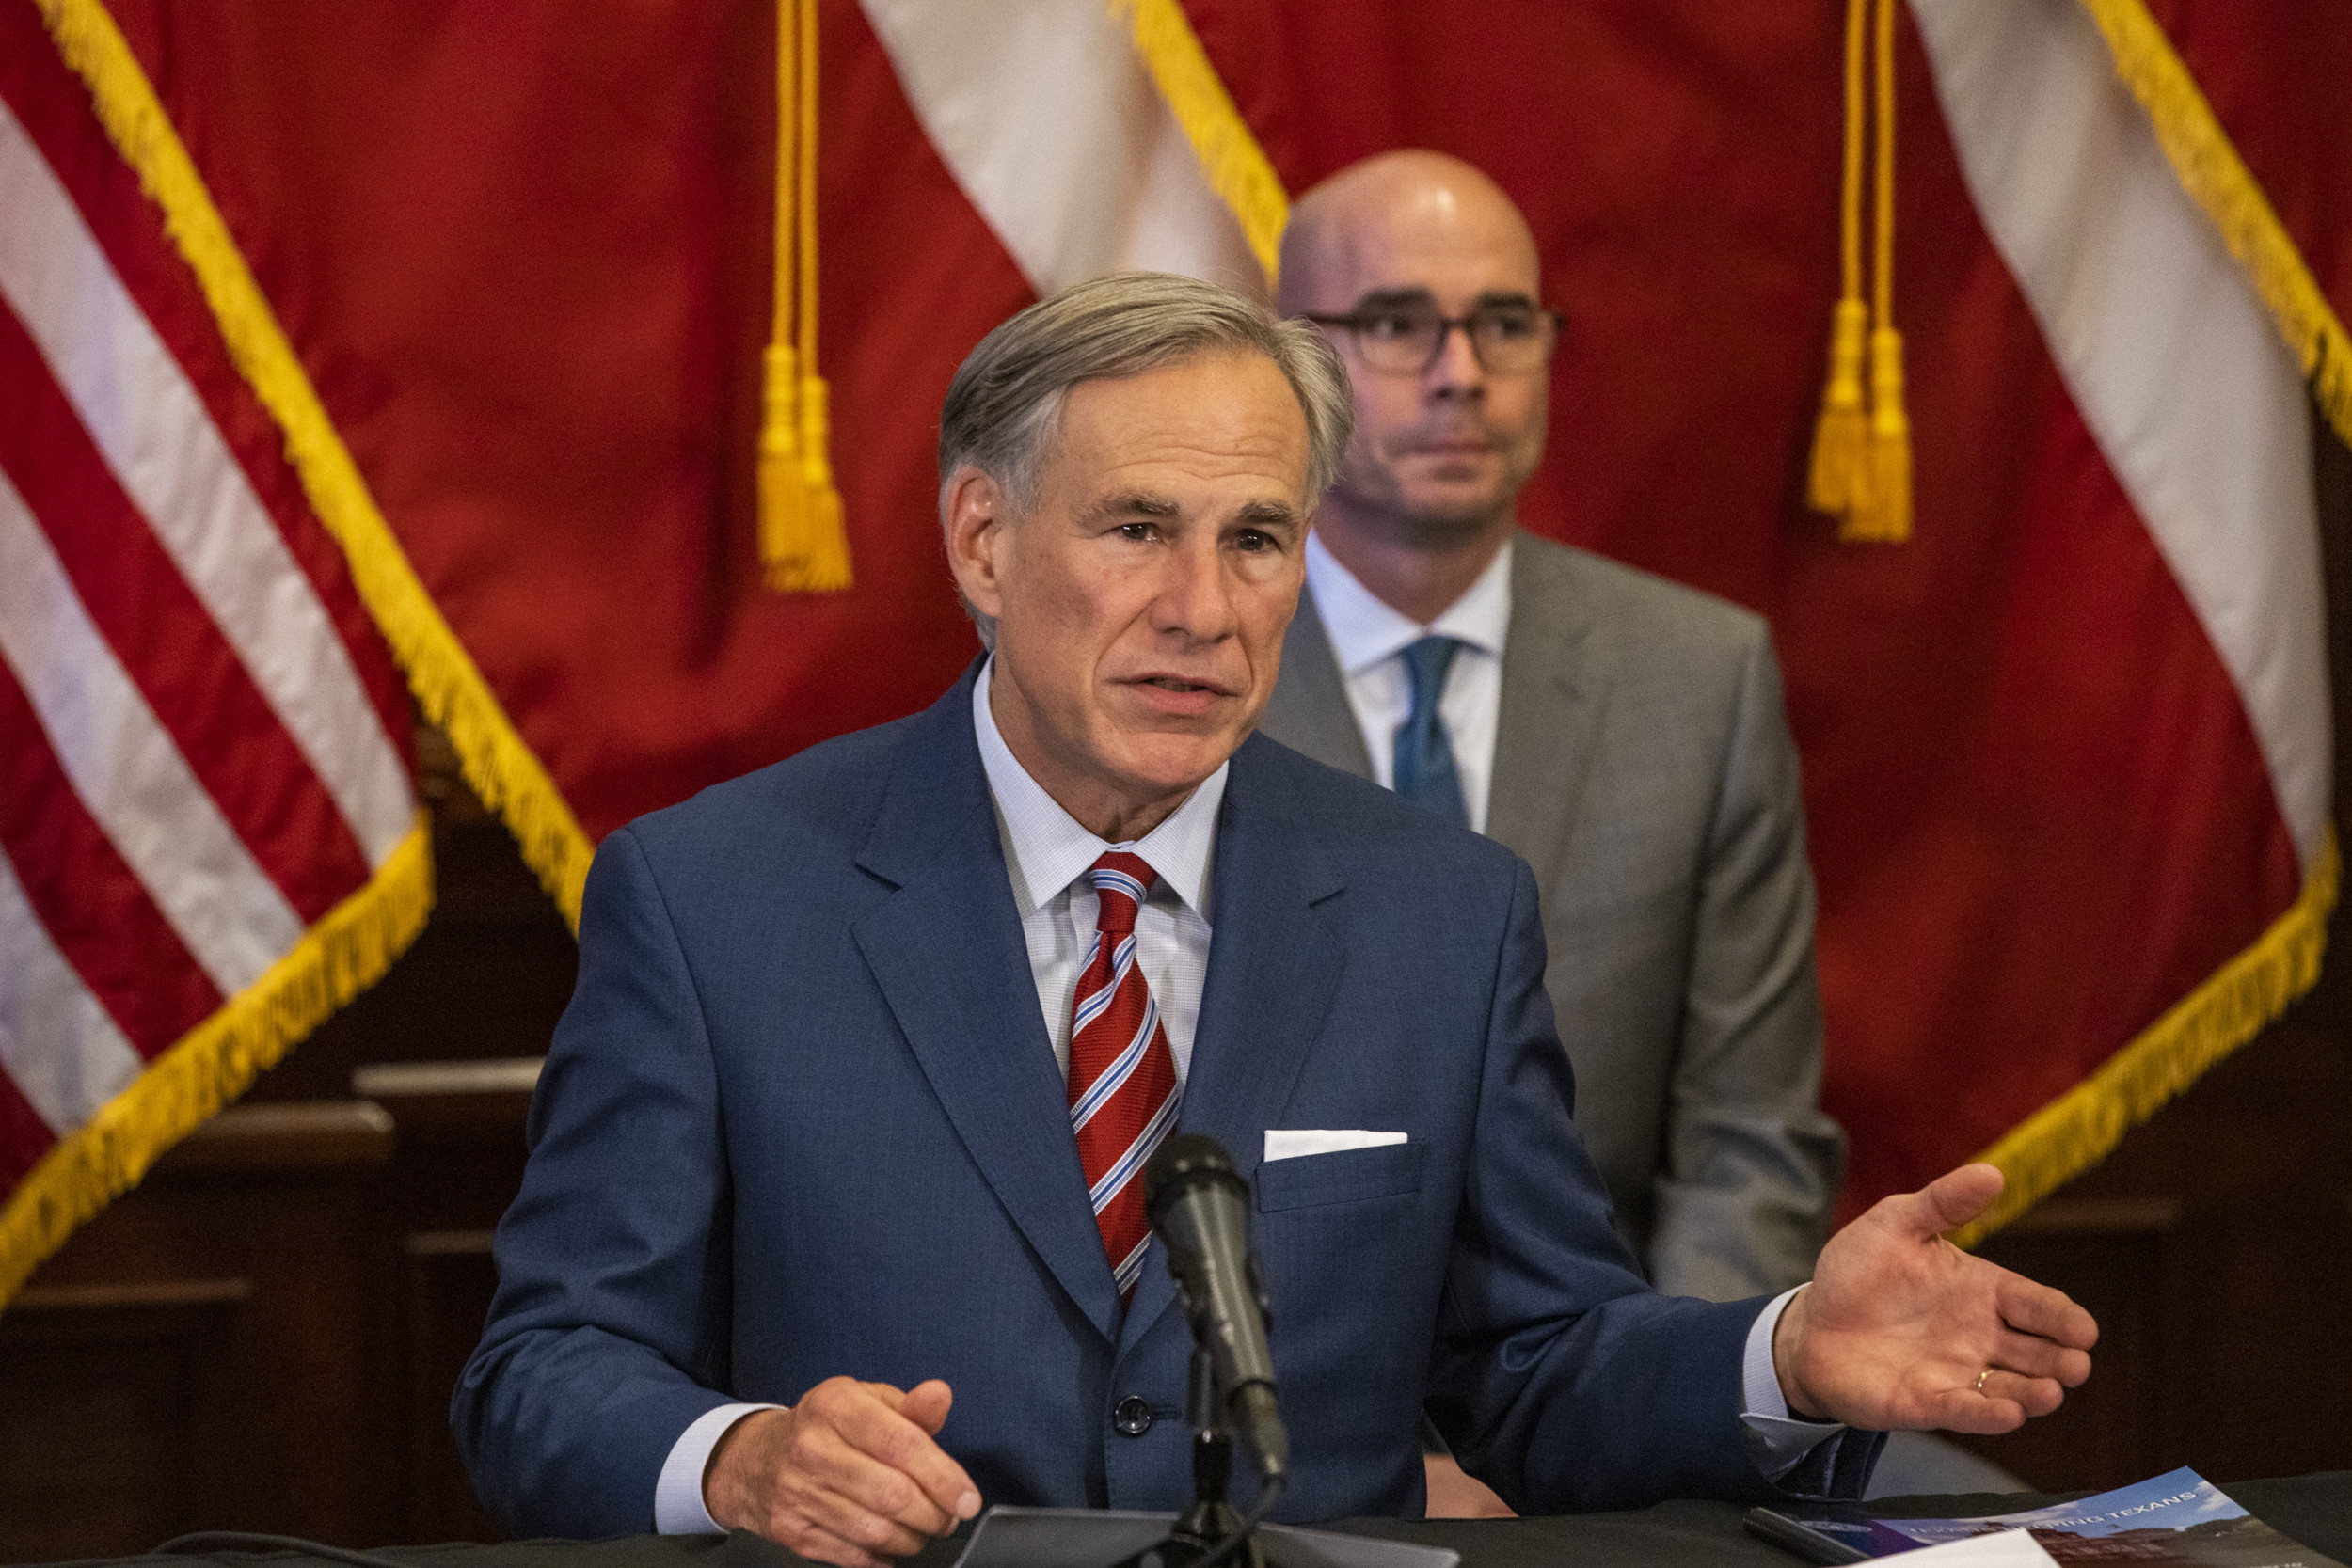 Texas governor joins 8 others in not requesting military presence to contain protesters